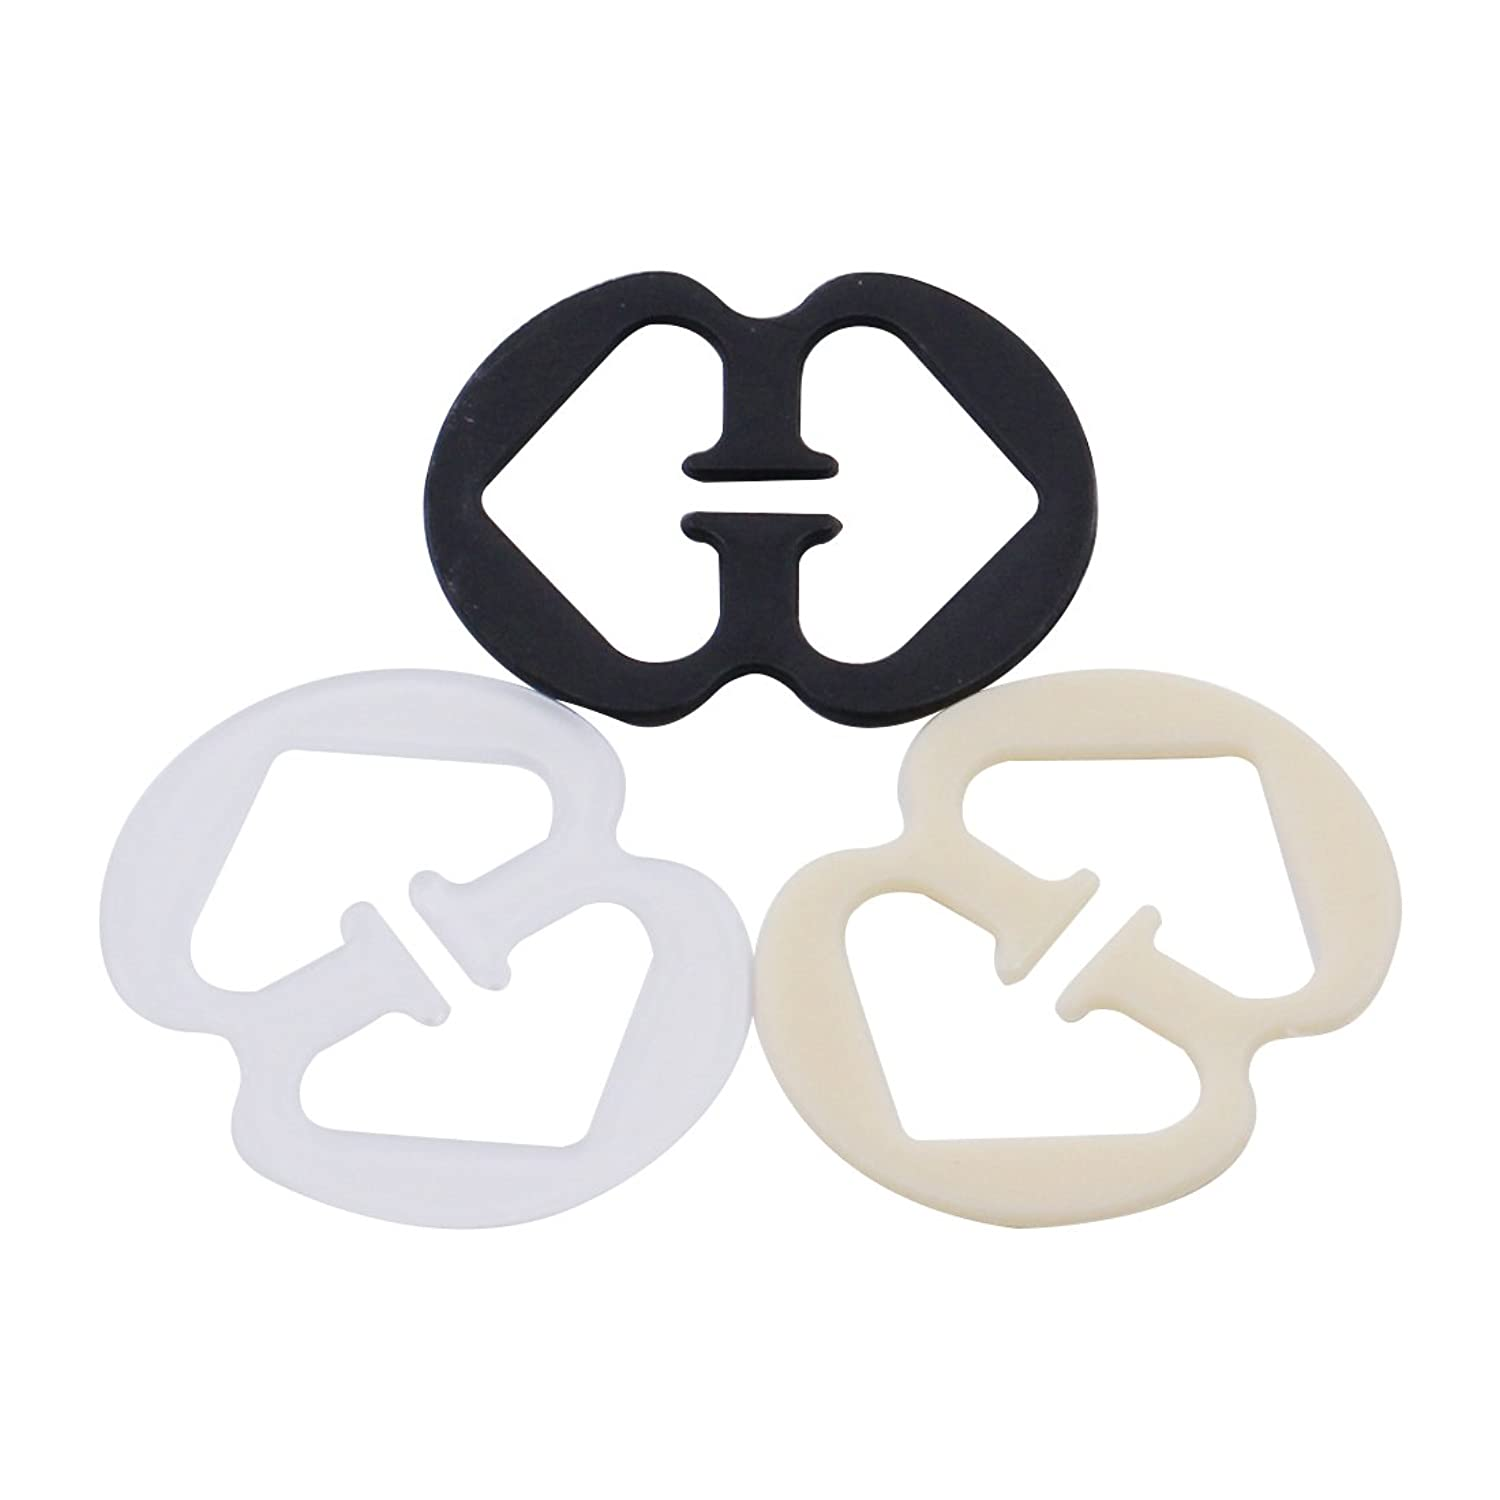 Yuri Milner 3 Pieces Bra Strap Clips Racer Back Conceal Straps Cleavage Control